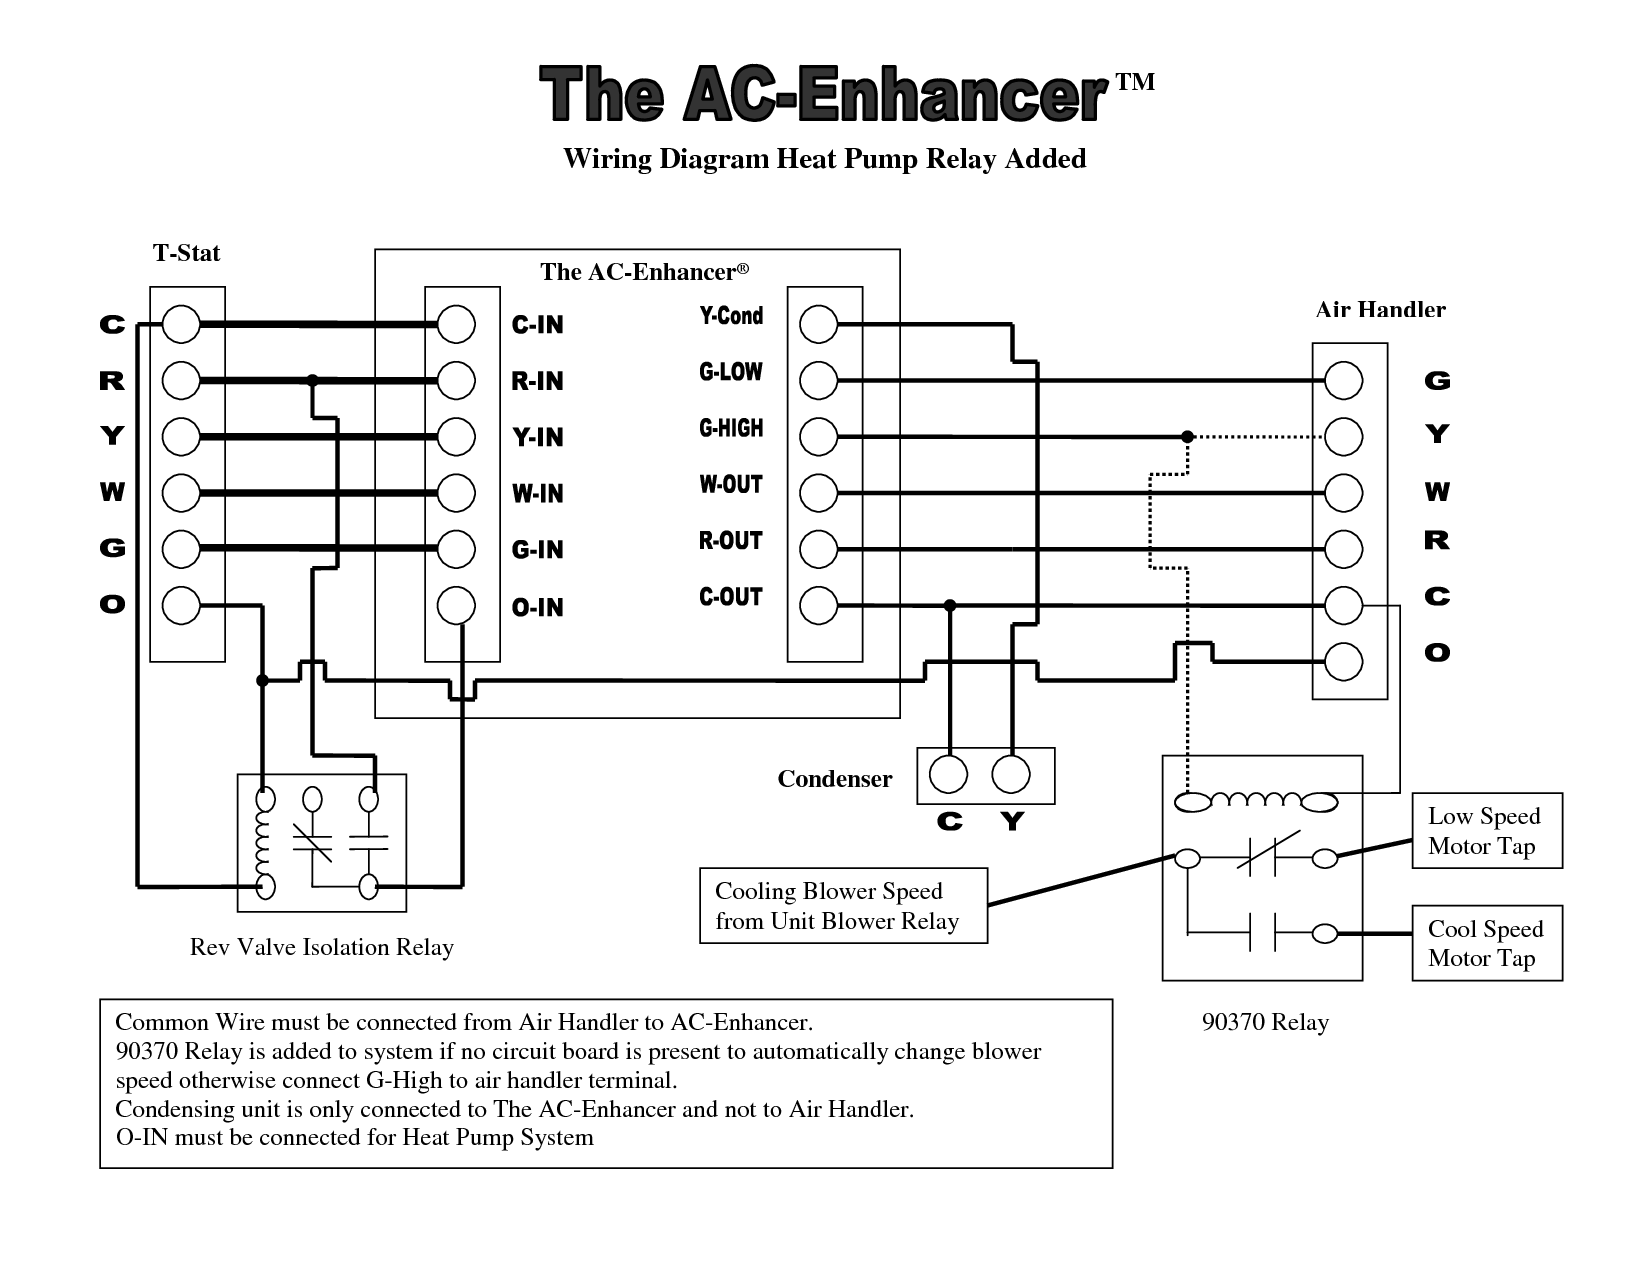 hvac wire diagram hvac image wiring diagram hvac wiring diagram aut ualparts com hvac wiring on hvac wire diagram